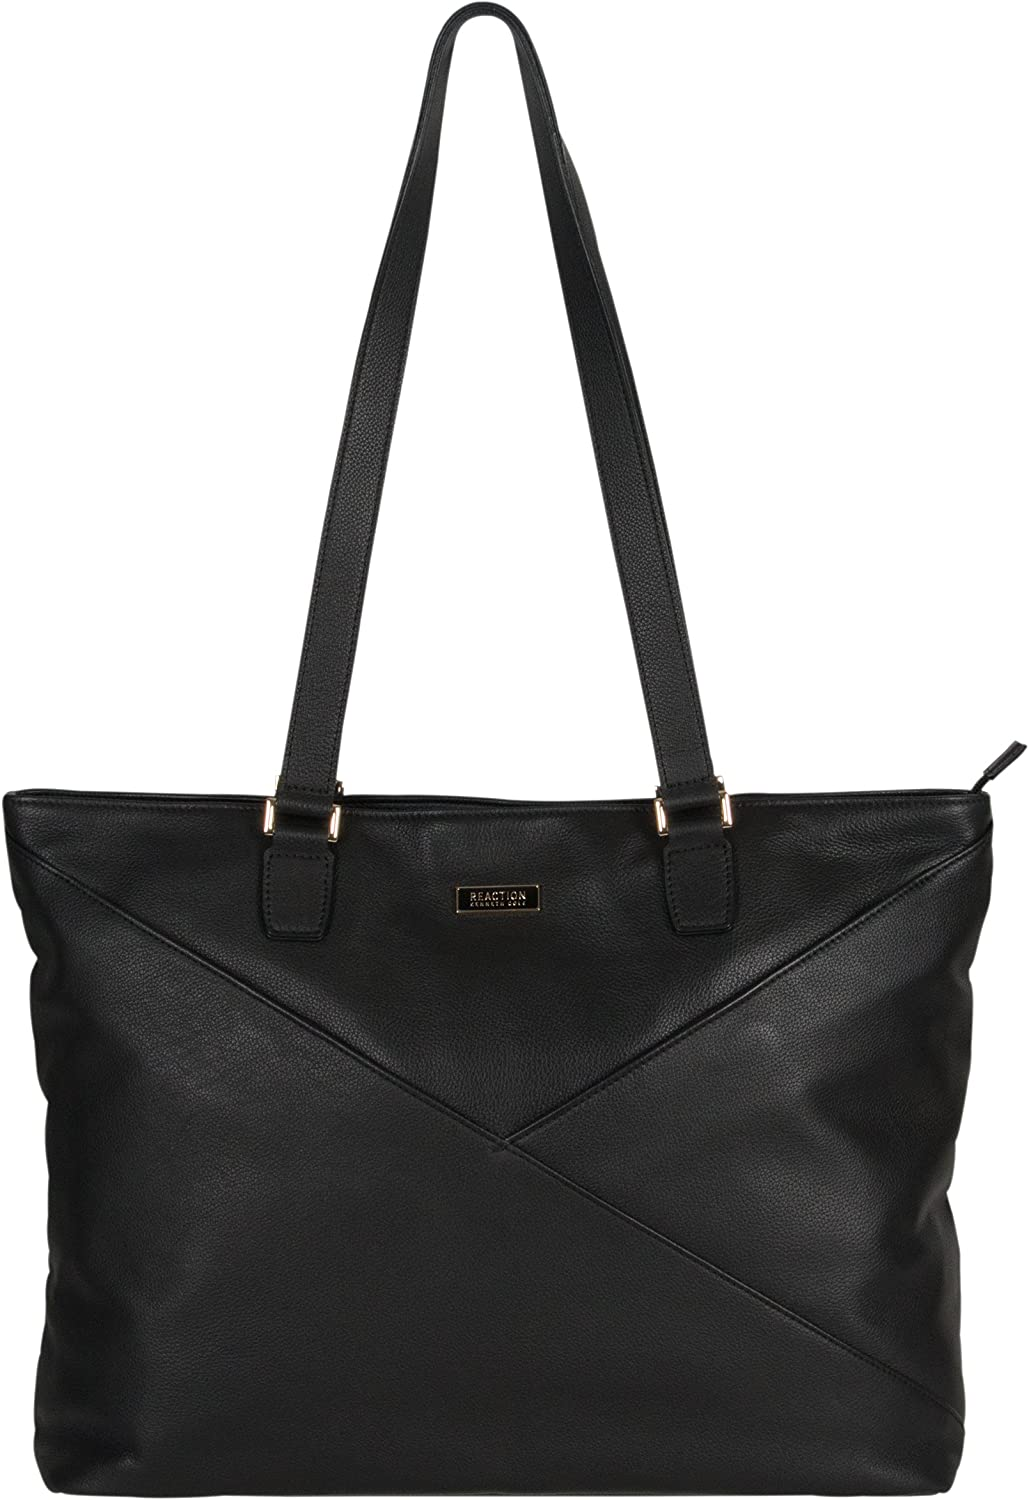 Kenneth Cole Reaction Leather Laptop Computer Business Tote